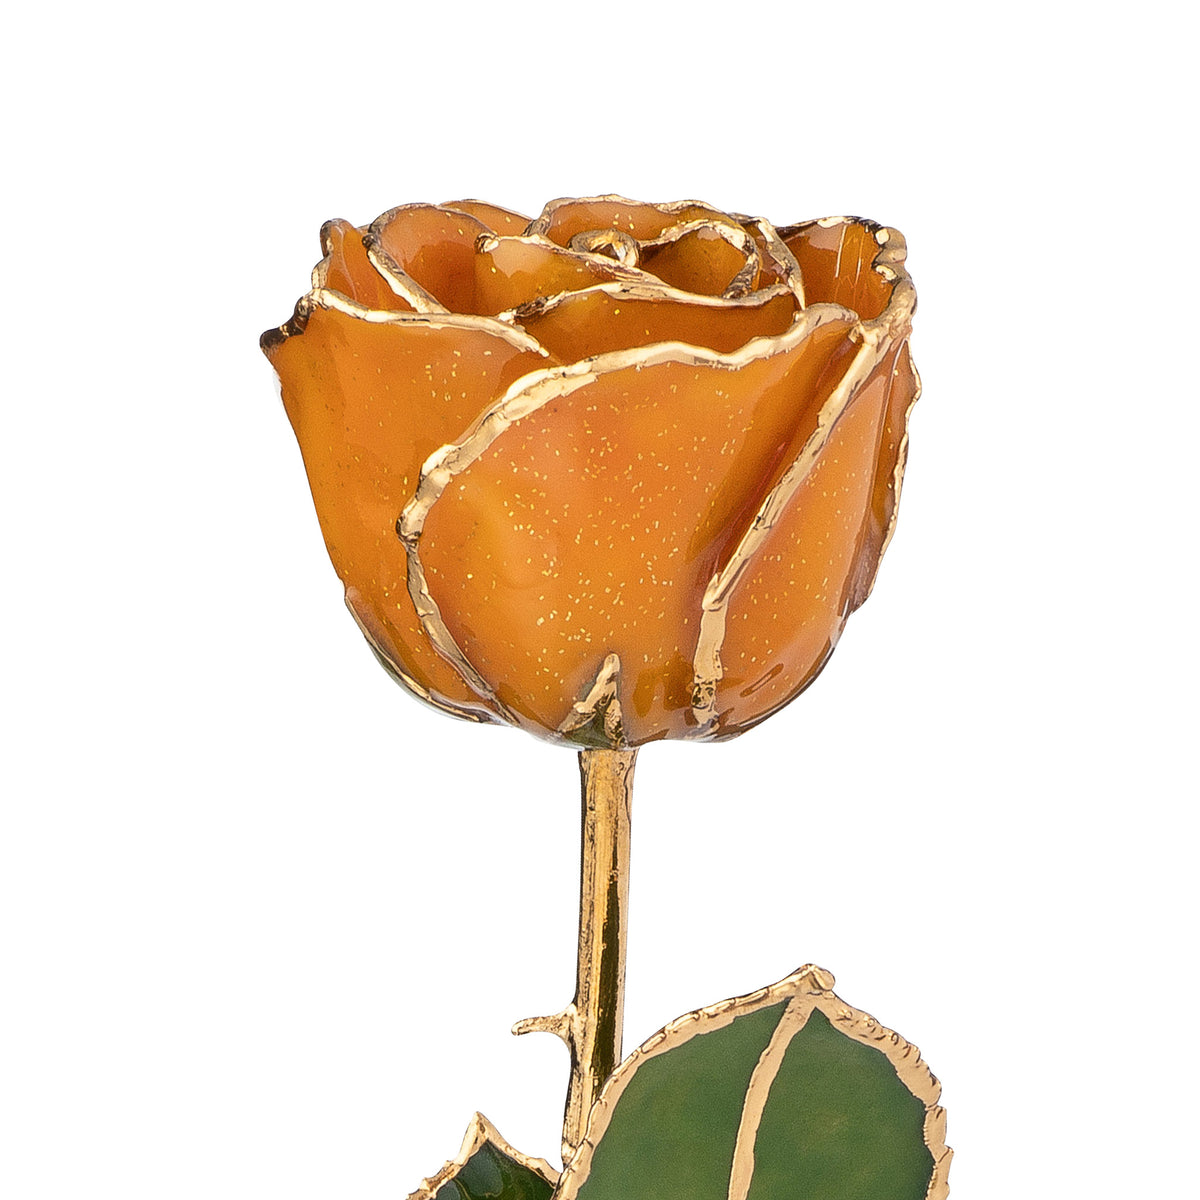 24K Gold Trimmed Forever Rose with Topaz or Citrine (Amber color) Petals with Gold colored Suspended Sparkles. View of Stem, Leaves, and Rose Petals and Showing Detail of Gold Trim